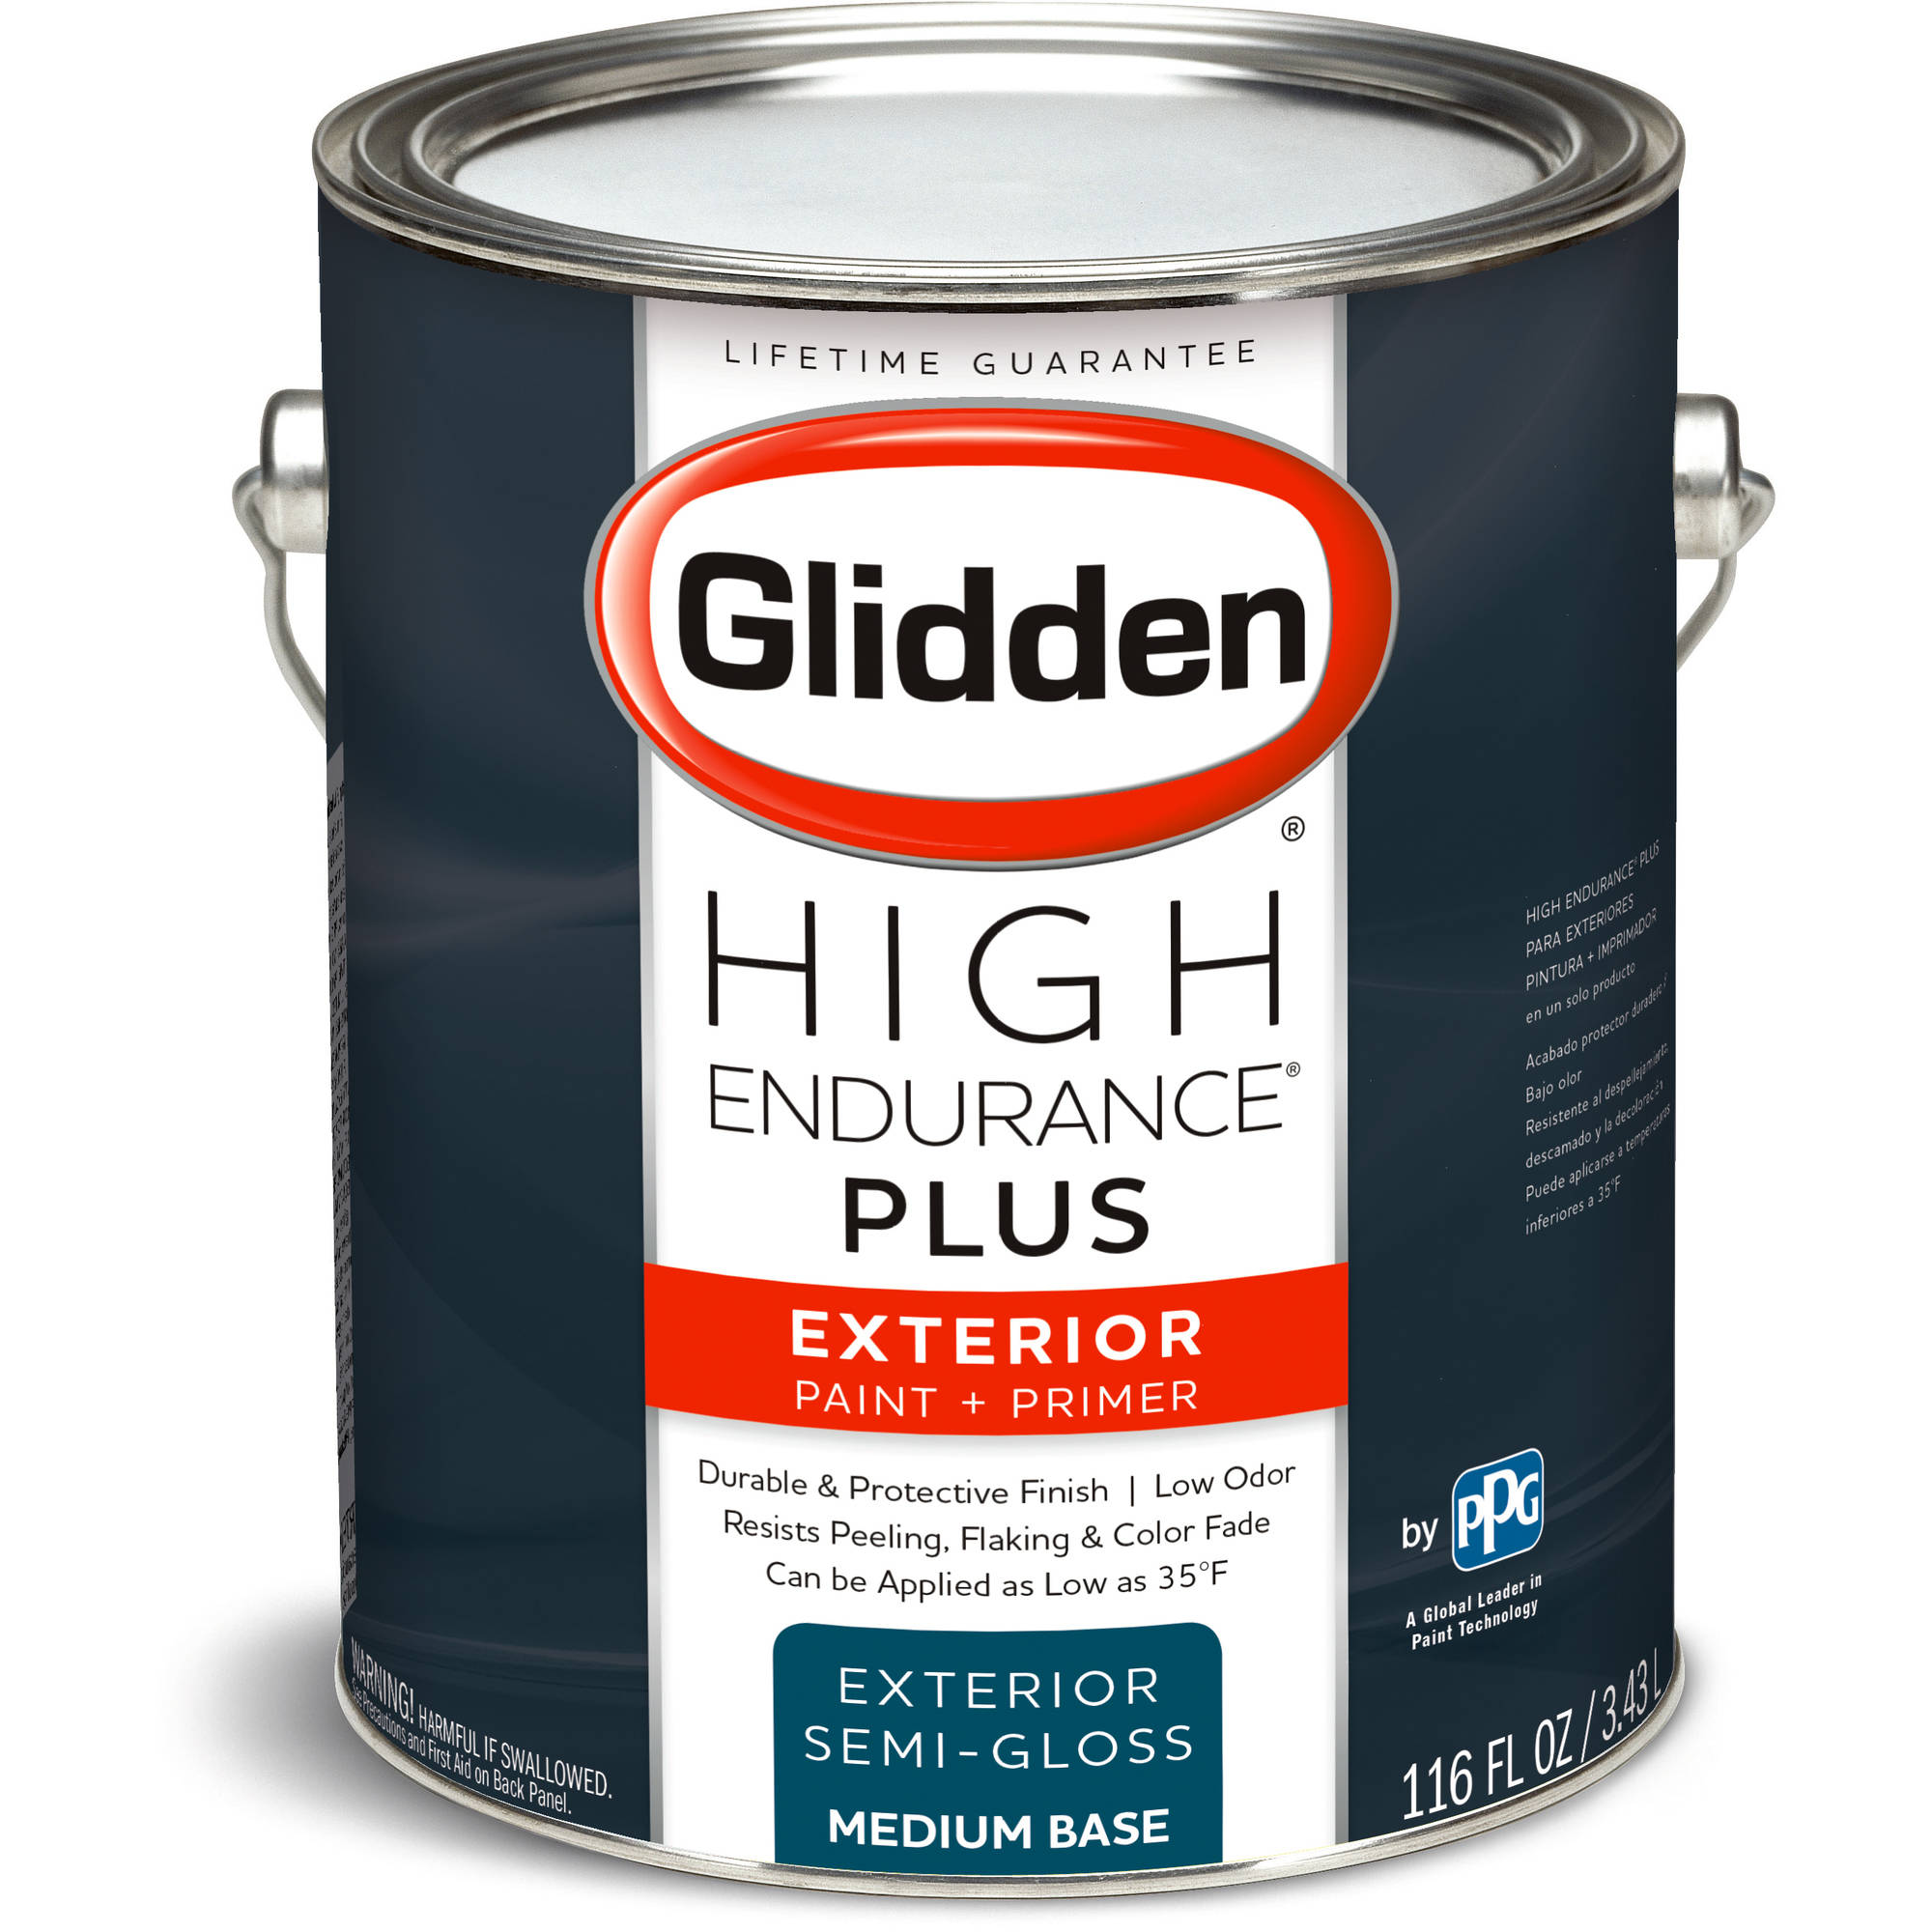 Glidden High Endurance Plus, Exterior Paint and Primer, Semi-Gloss Finish, Medium Base, 1 Gallon